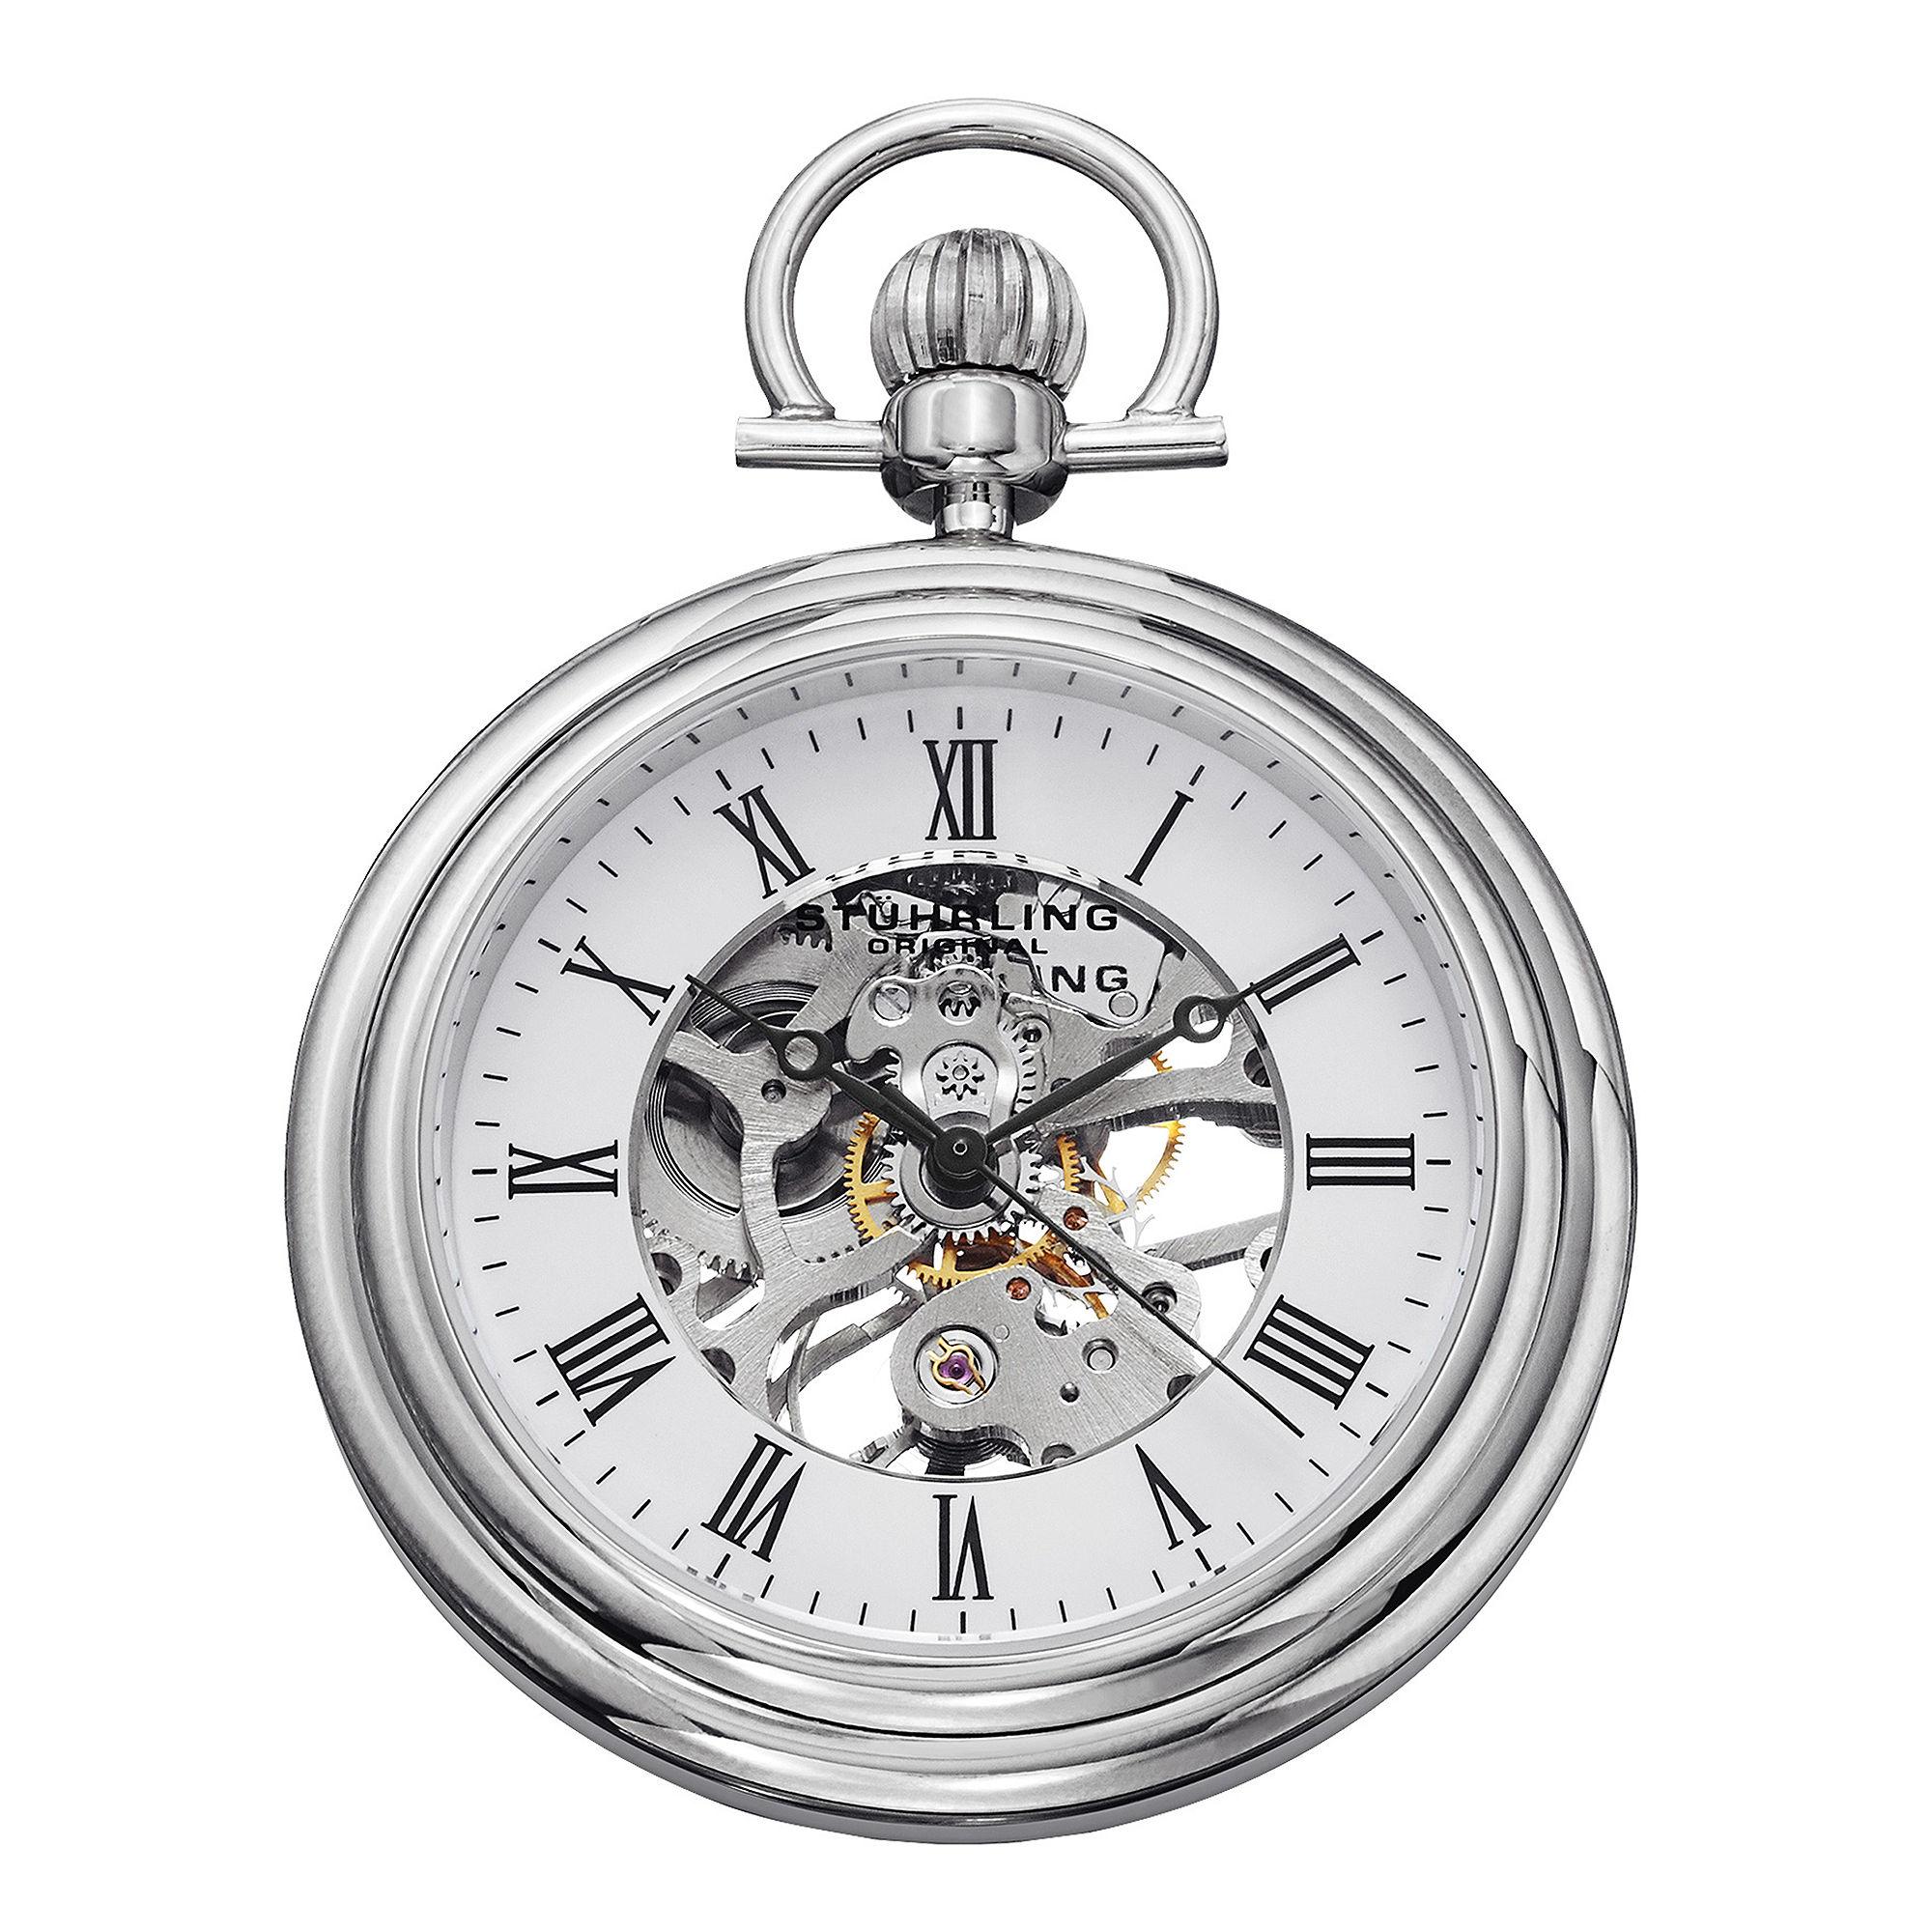 Sthrling Original Mens Stainless Steel Skeleton Automatic Pocket Watch